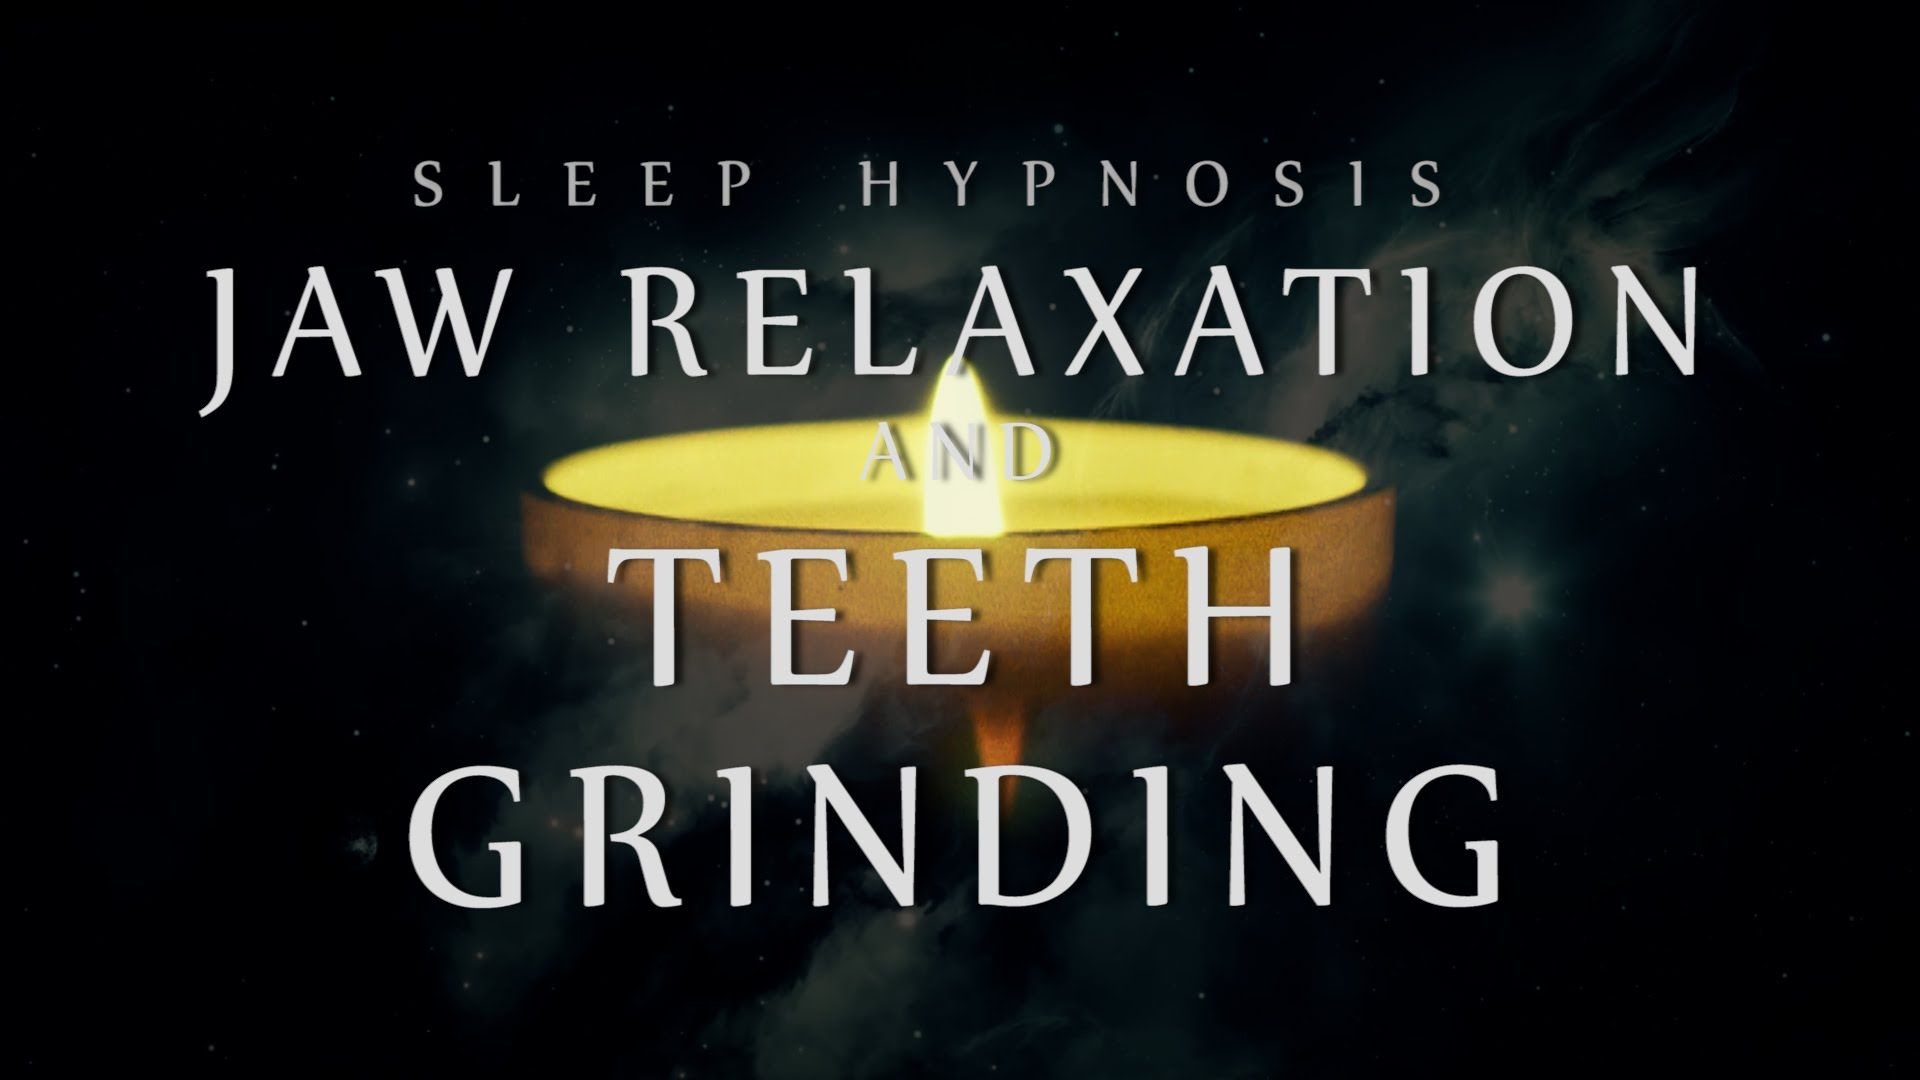 BRUXISM: Sleep Hypnosis for Jaw Relaxation & Teeth Grinding (TMJ / TMD)